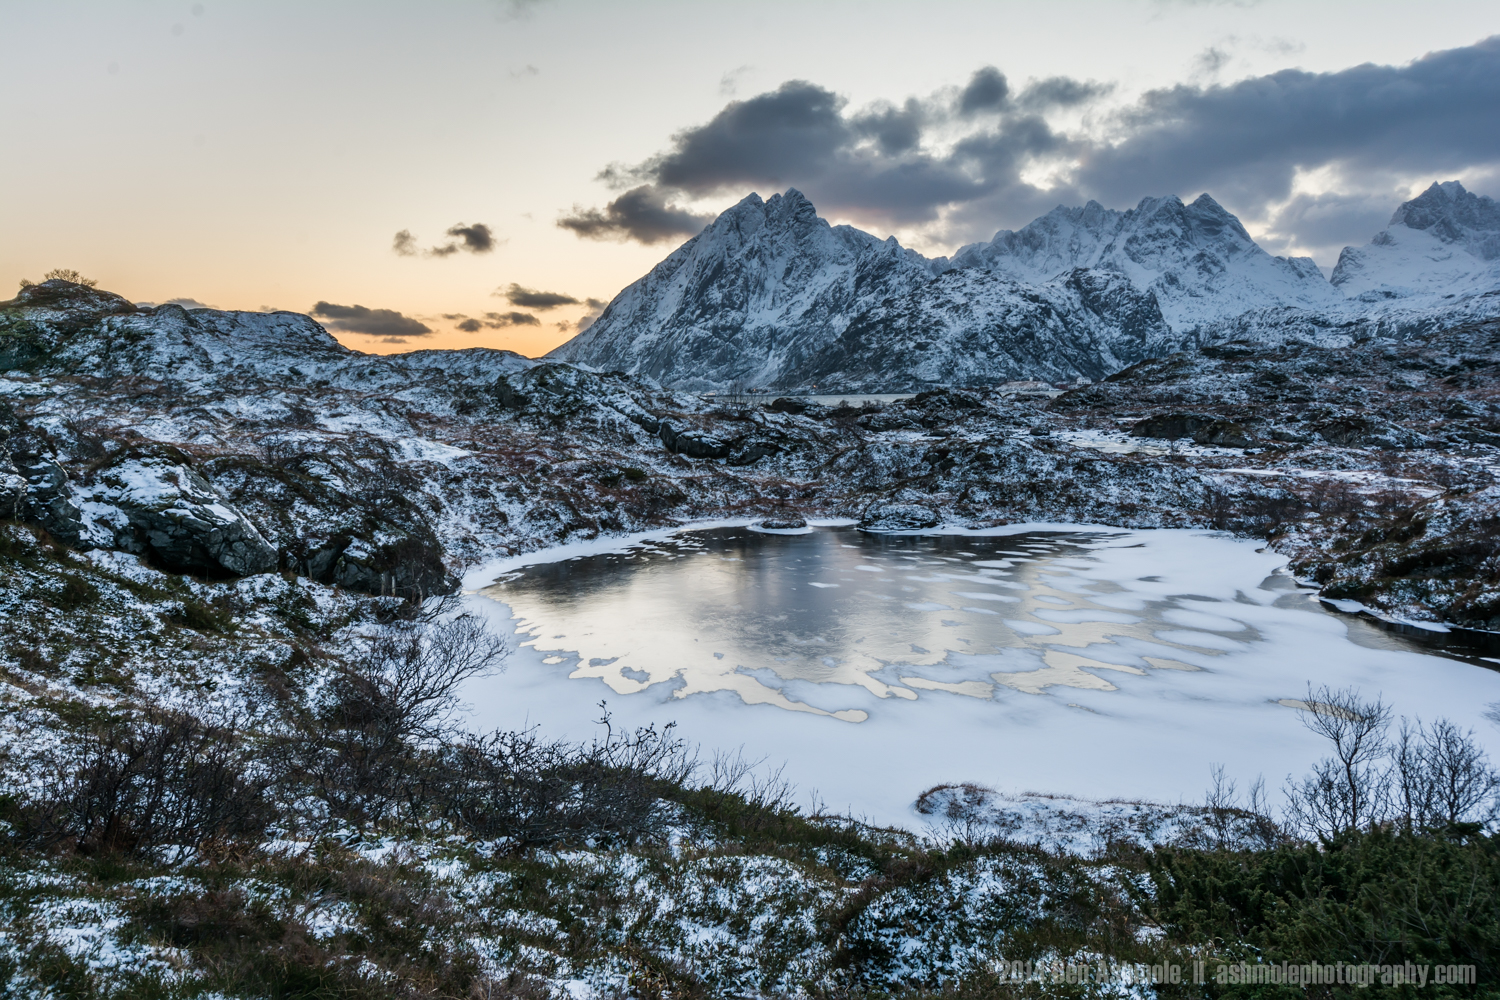 The Frozen Lake, Lofoten Islands, Norway